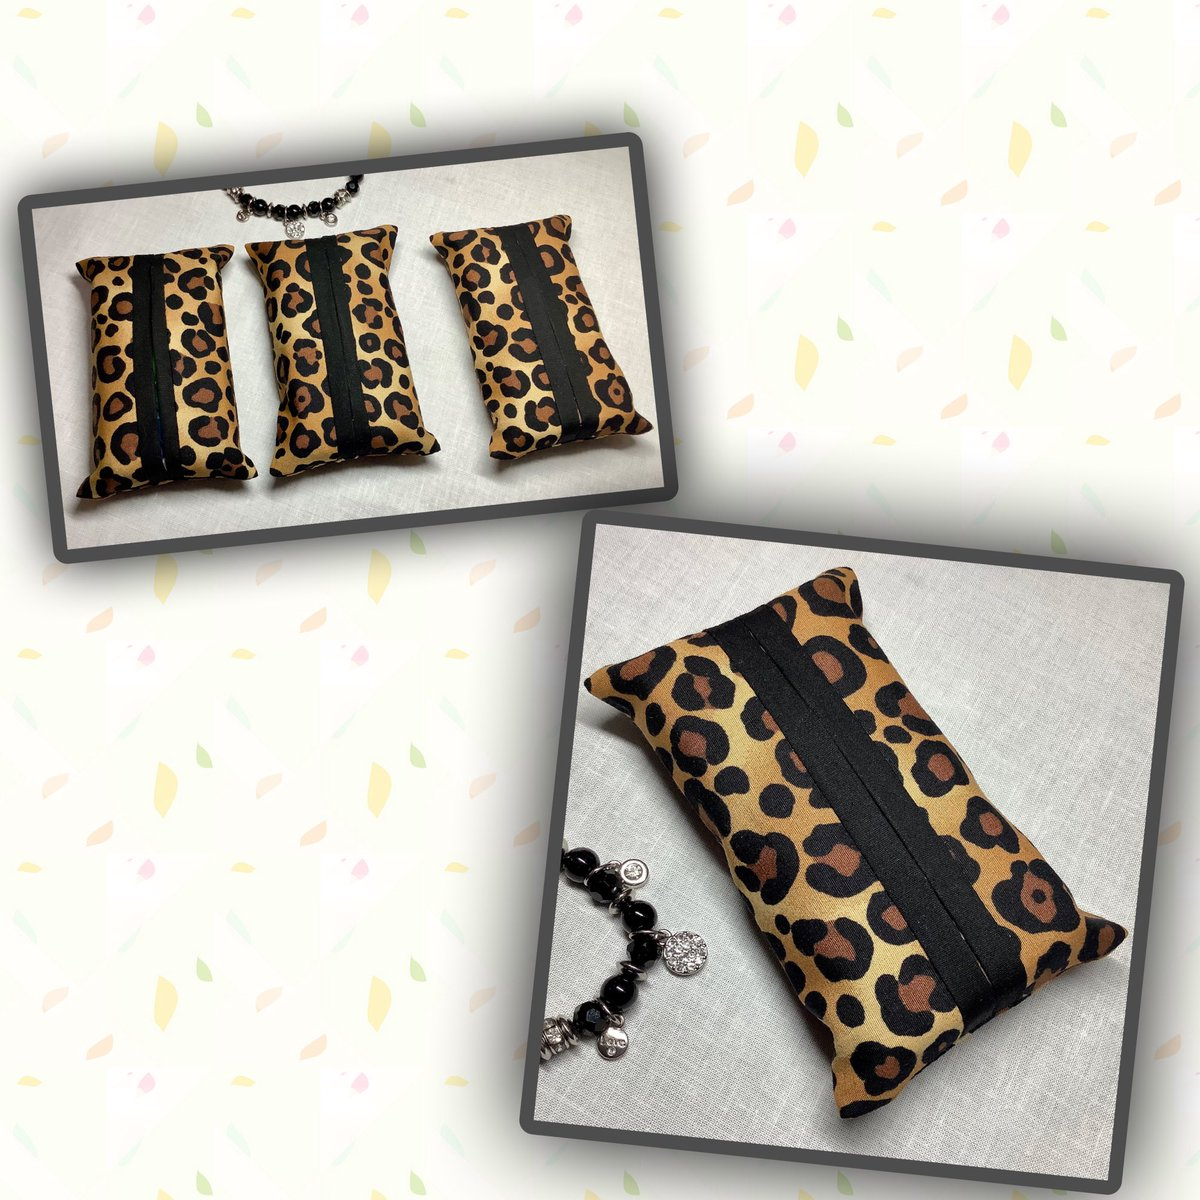 #leopardprint #tissueholders available from my #etsyshop matching #facemasks also available. #WearAMask #StaySafe #christmasgiftidea